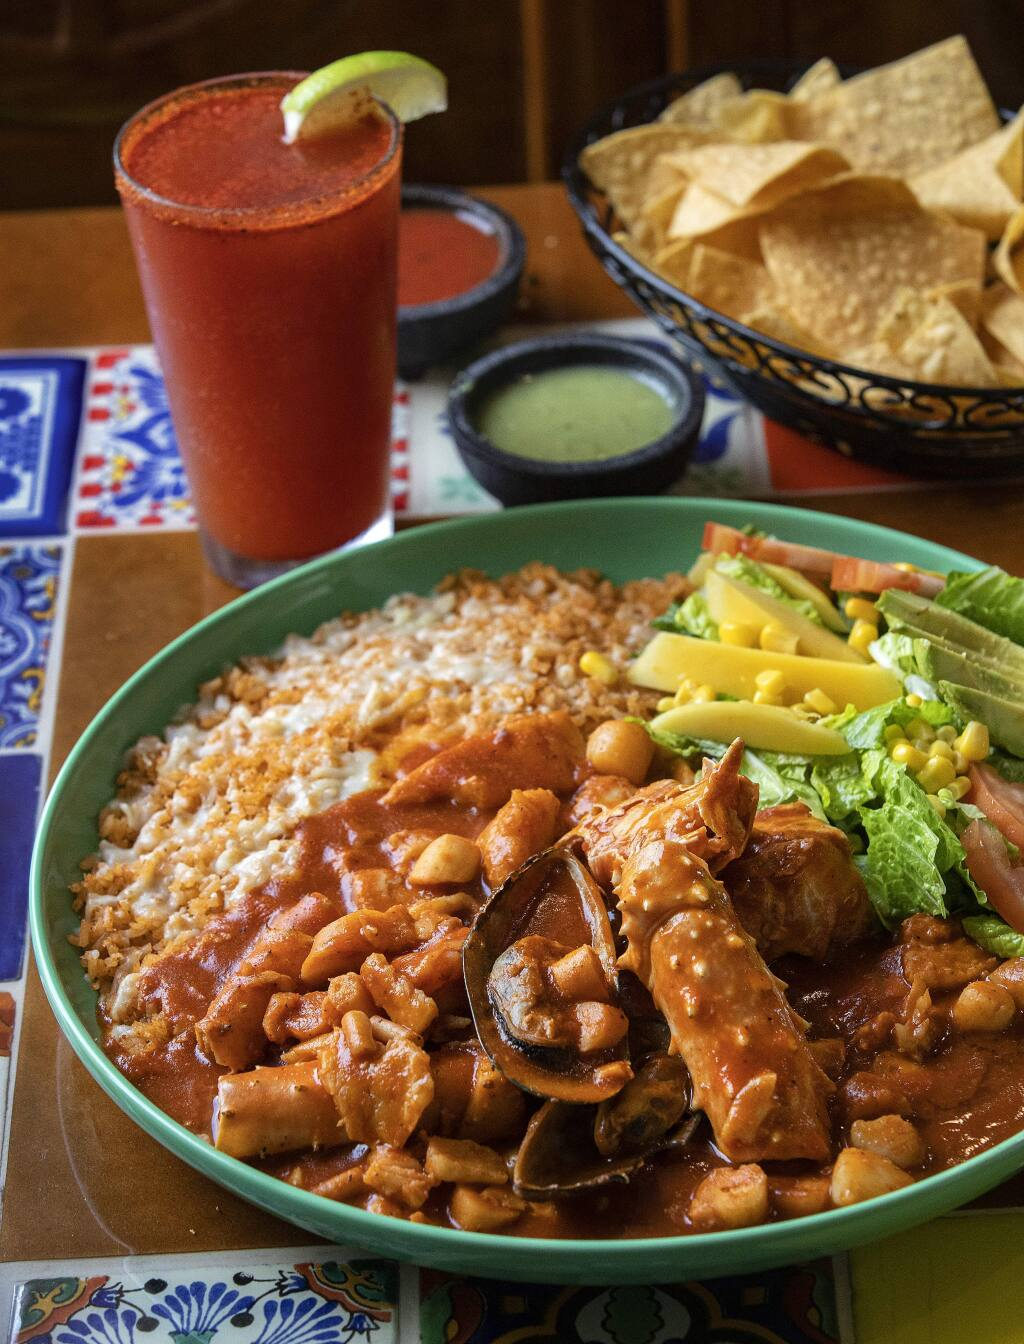 Mariscos Jarochos of prawns, octopus, scallops, crab legs, fish and green mussels in red sauce with a Michelada spiced beer from the La Hacienda Mexican Grill in Sonoma. (John Burgess/The Press Democrat)